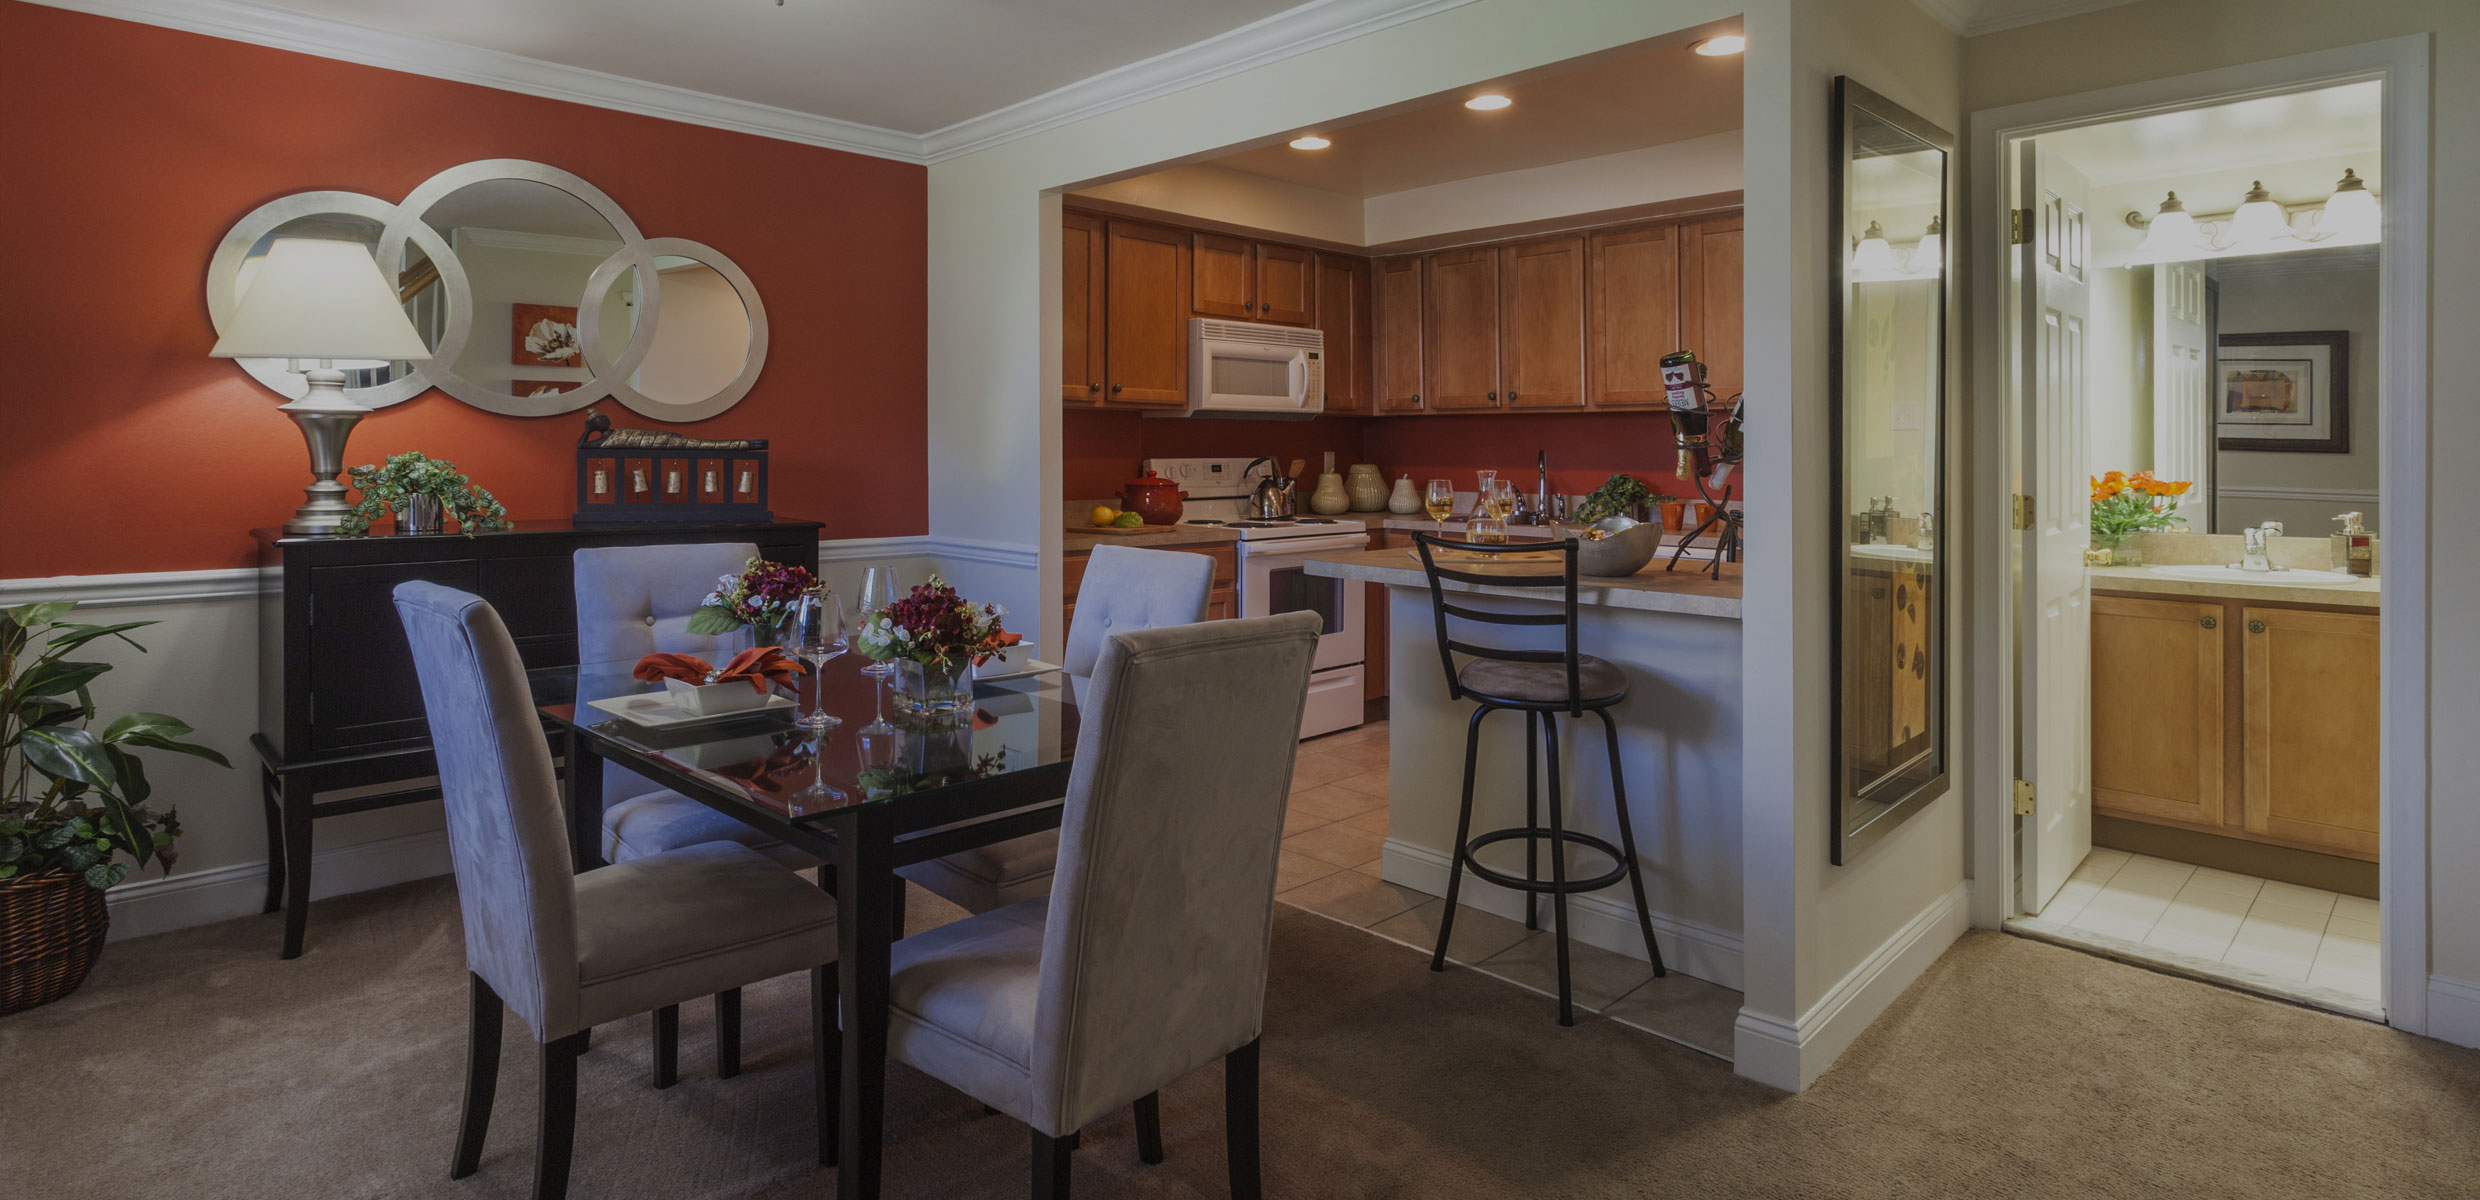 Townline Townhomes Dining Area & Kitchen